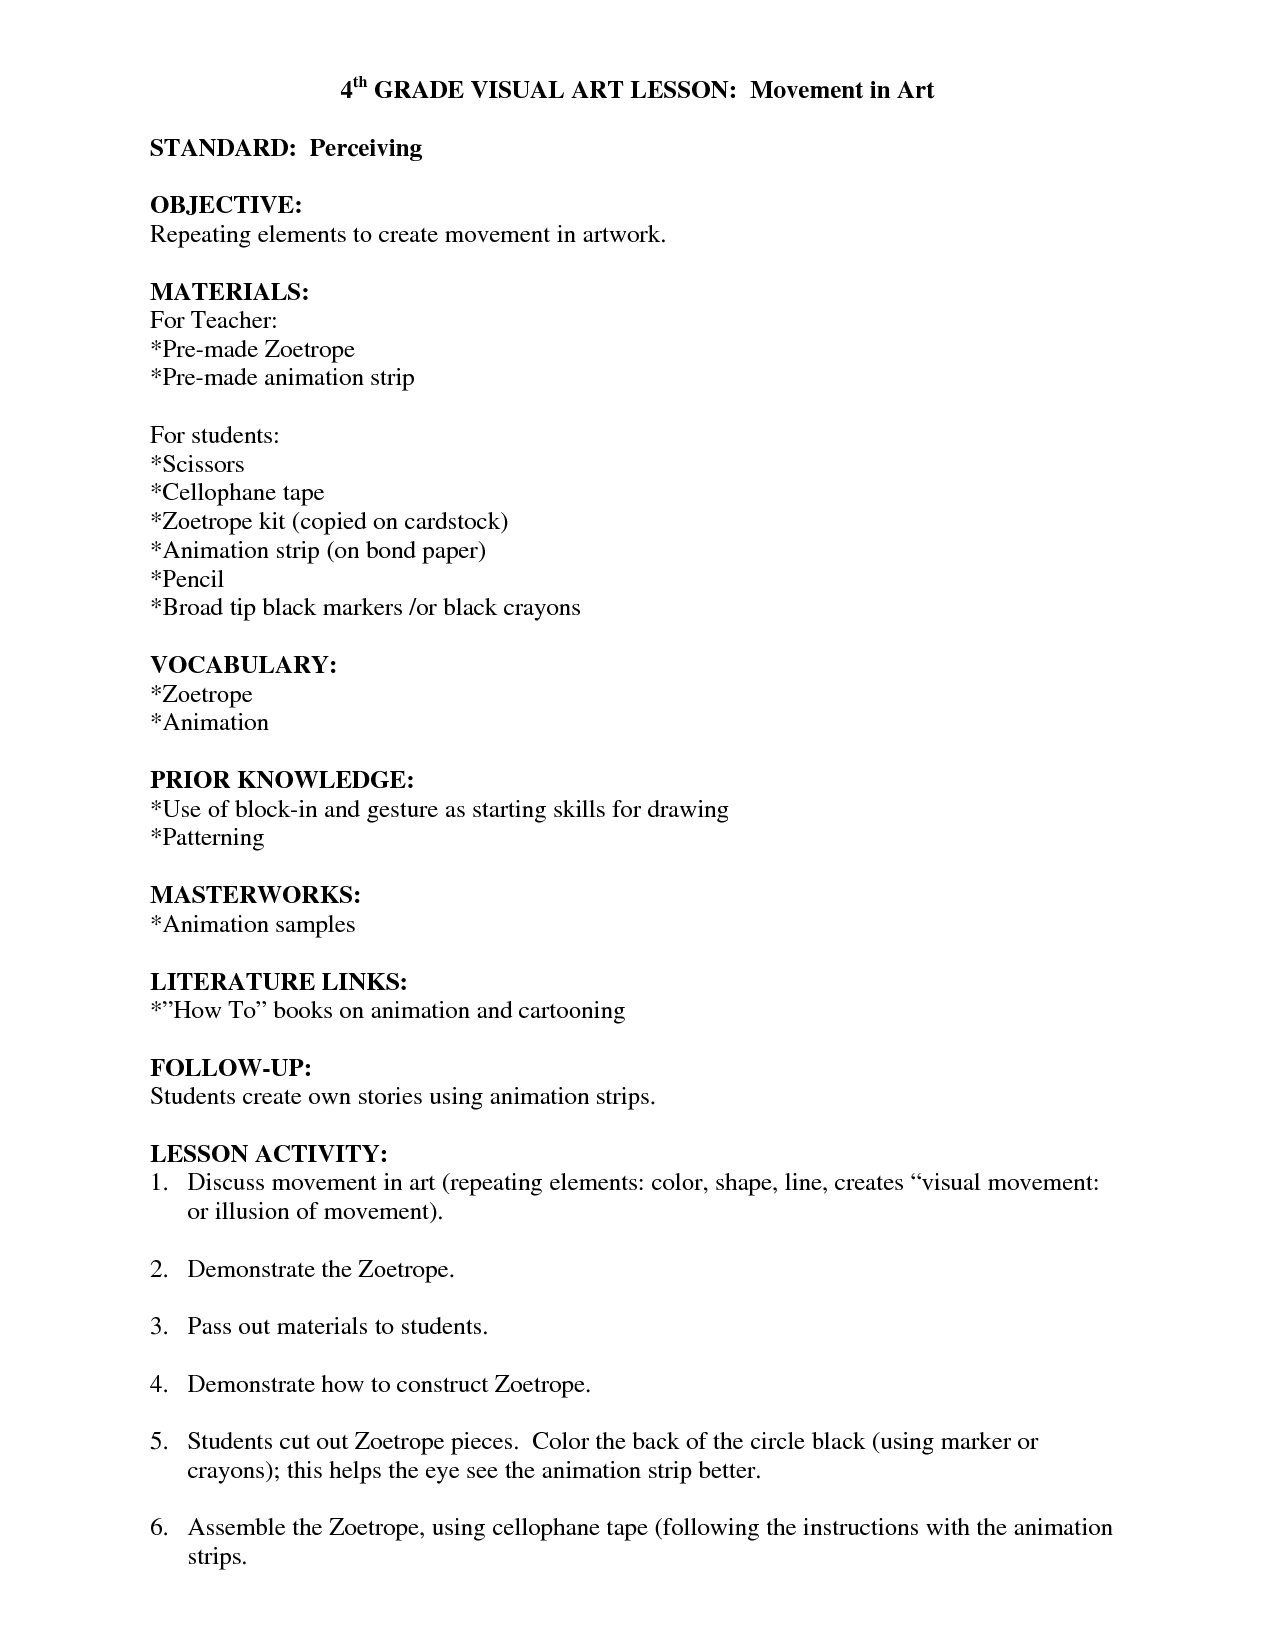 Visual Arts Lesson Plan Template | Visual Arts Lesson Plan Template ...